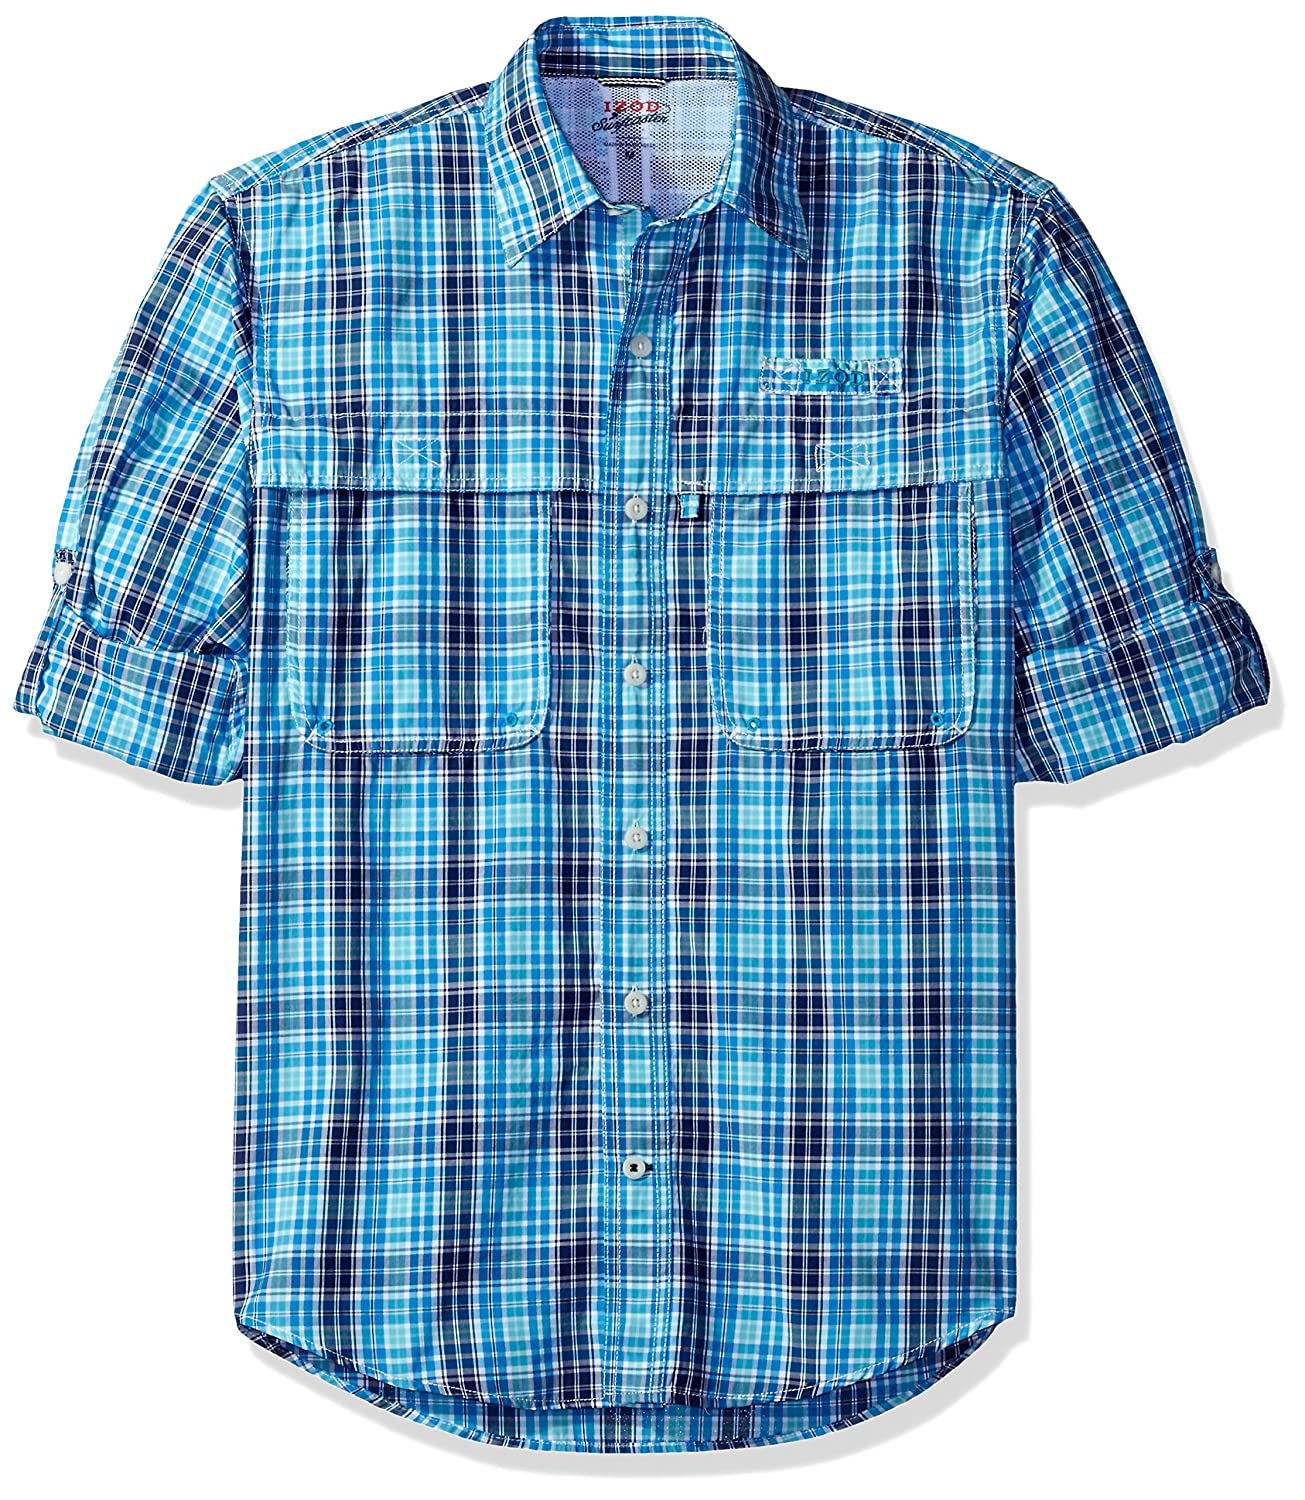 Izod Men's Long Sleeve Surfcaster Plaid Fishing Shirt IZOD Men's Sportswear 45SW469